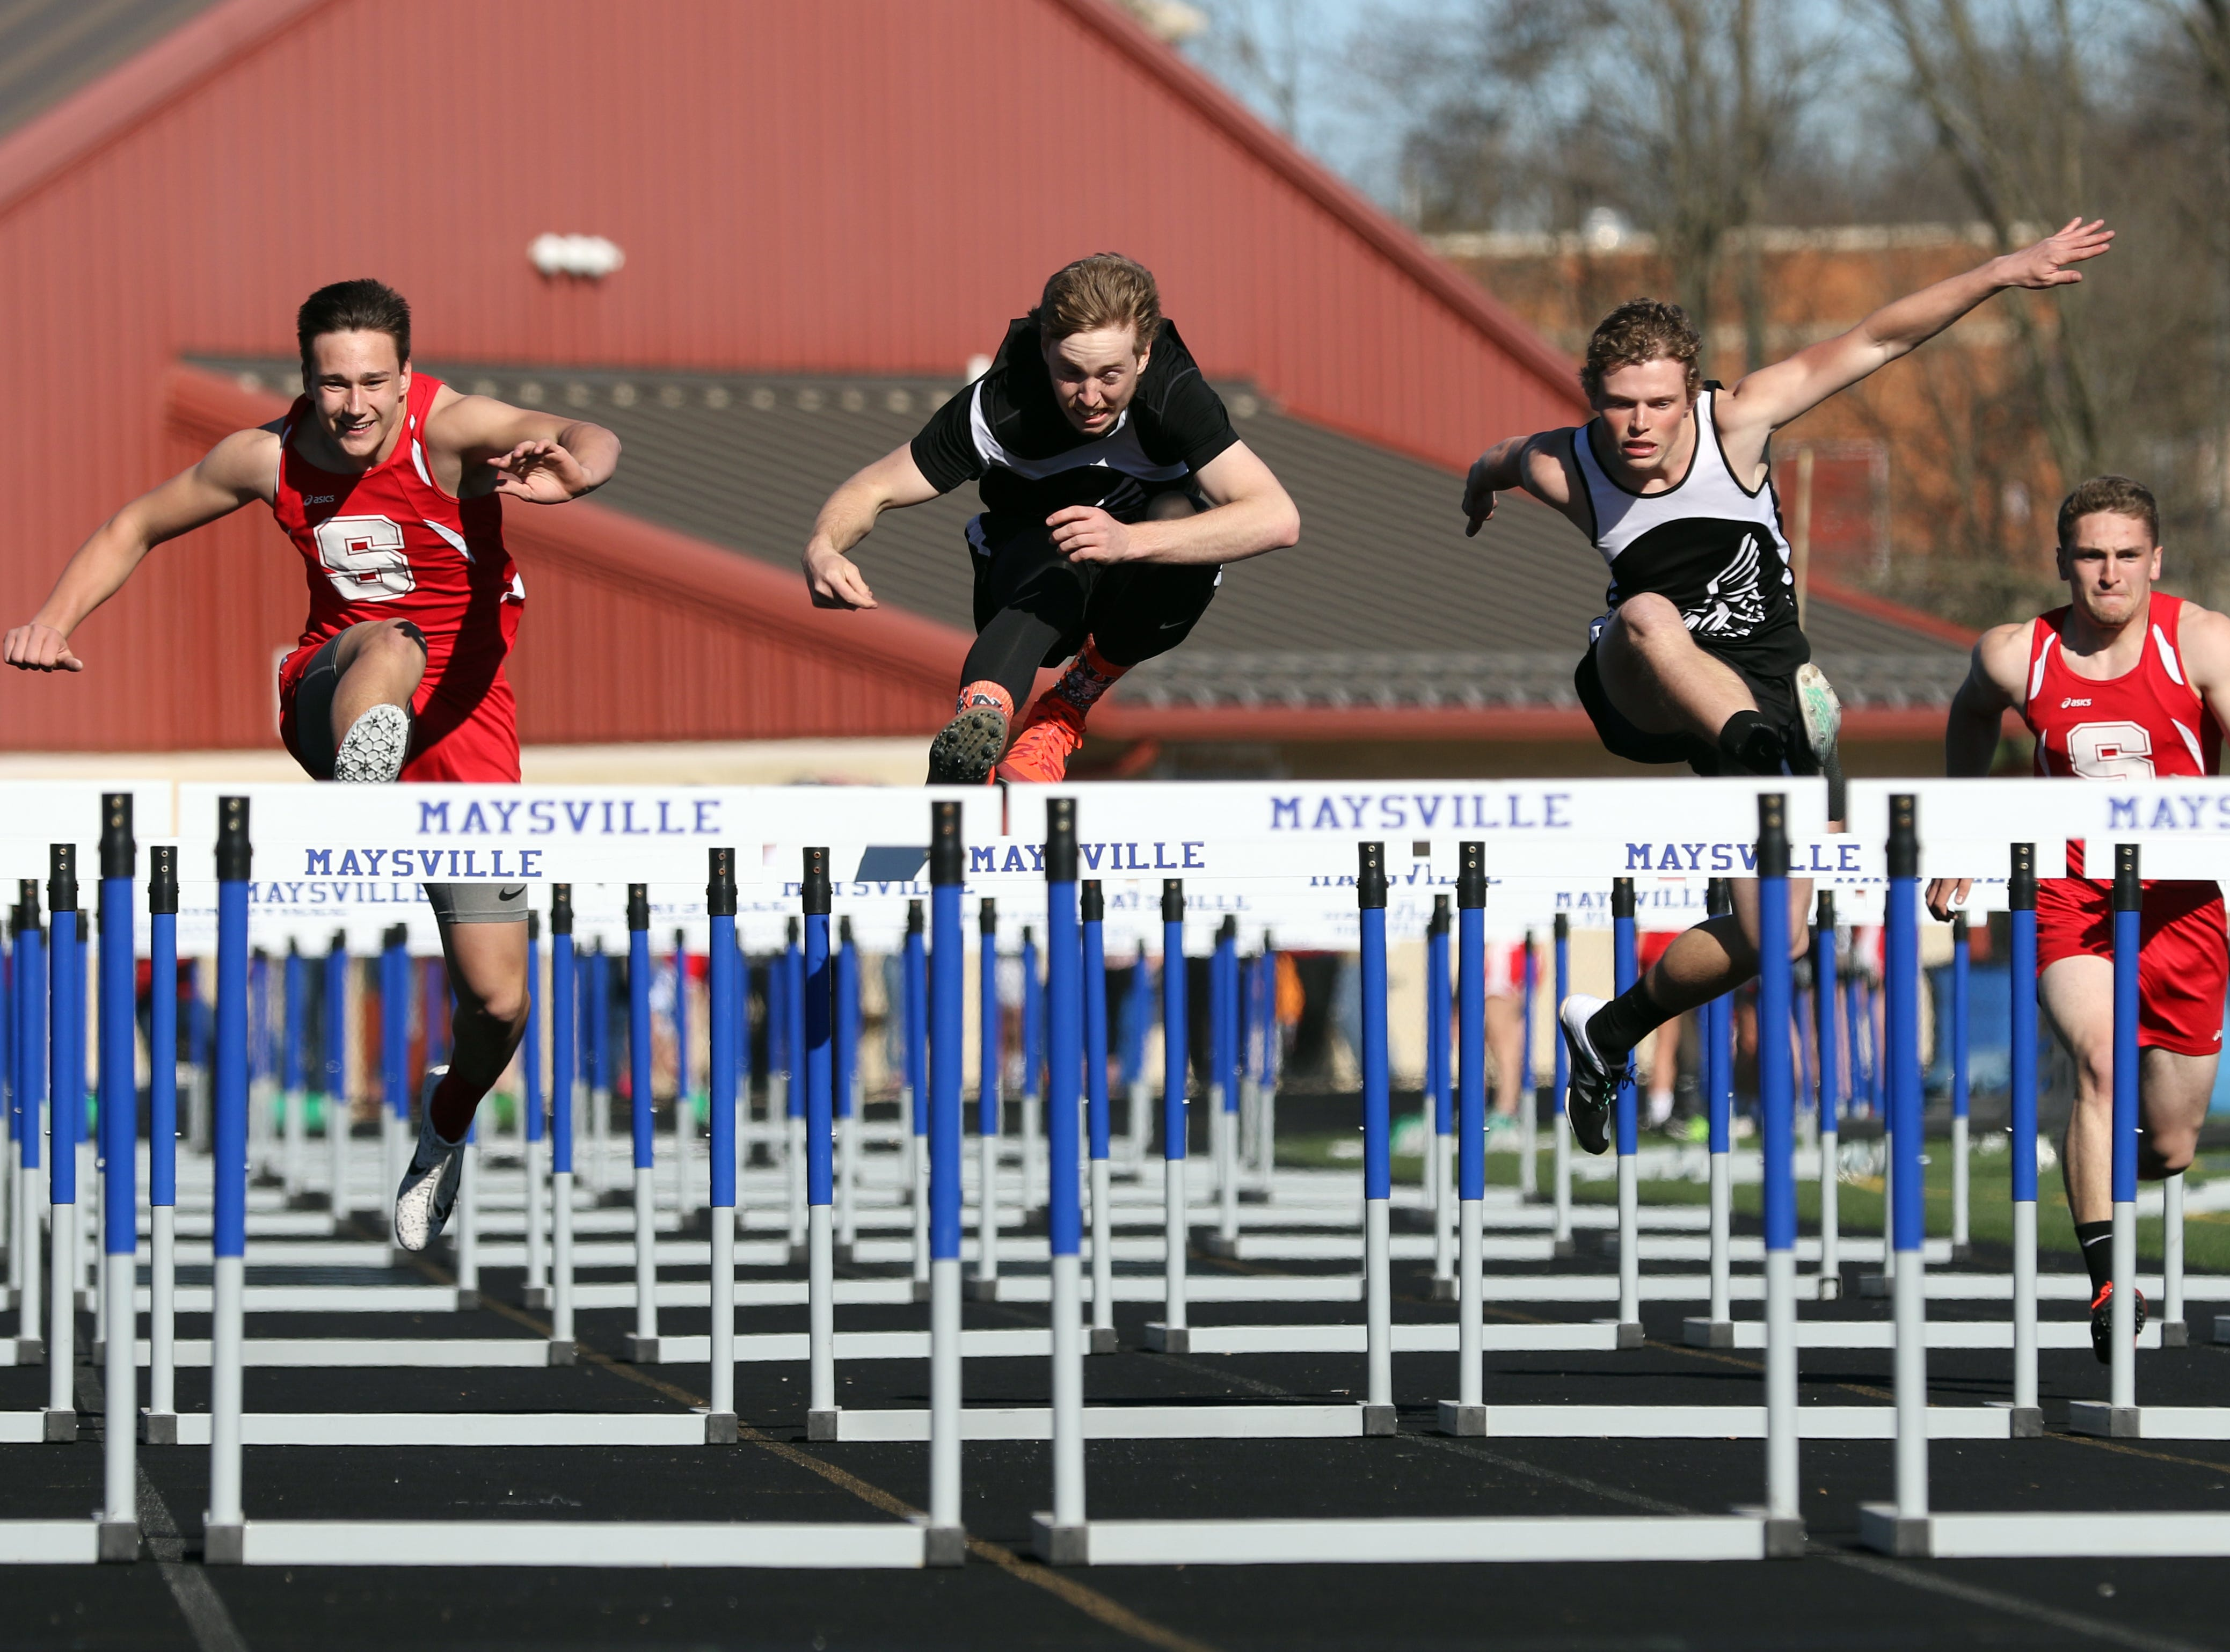 New Lexington's Jacob Vance leads Sheridan's Graham Grant and fellow panther Austin Tharp toward the last hurdle in the 110 meter hurdles during Tuesday's tri-meet between Sheridan, New Lexington and host Maysville.